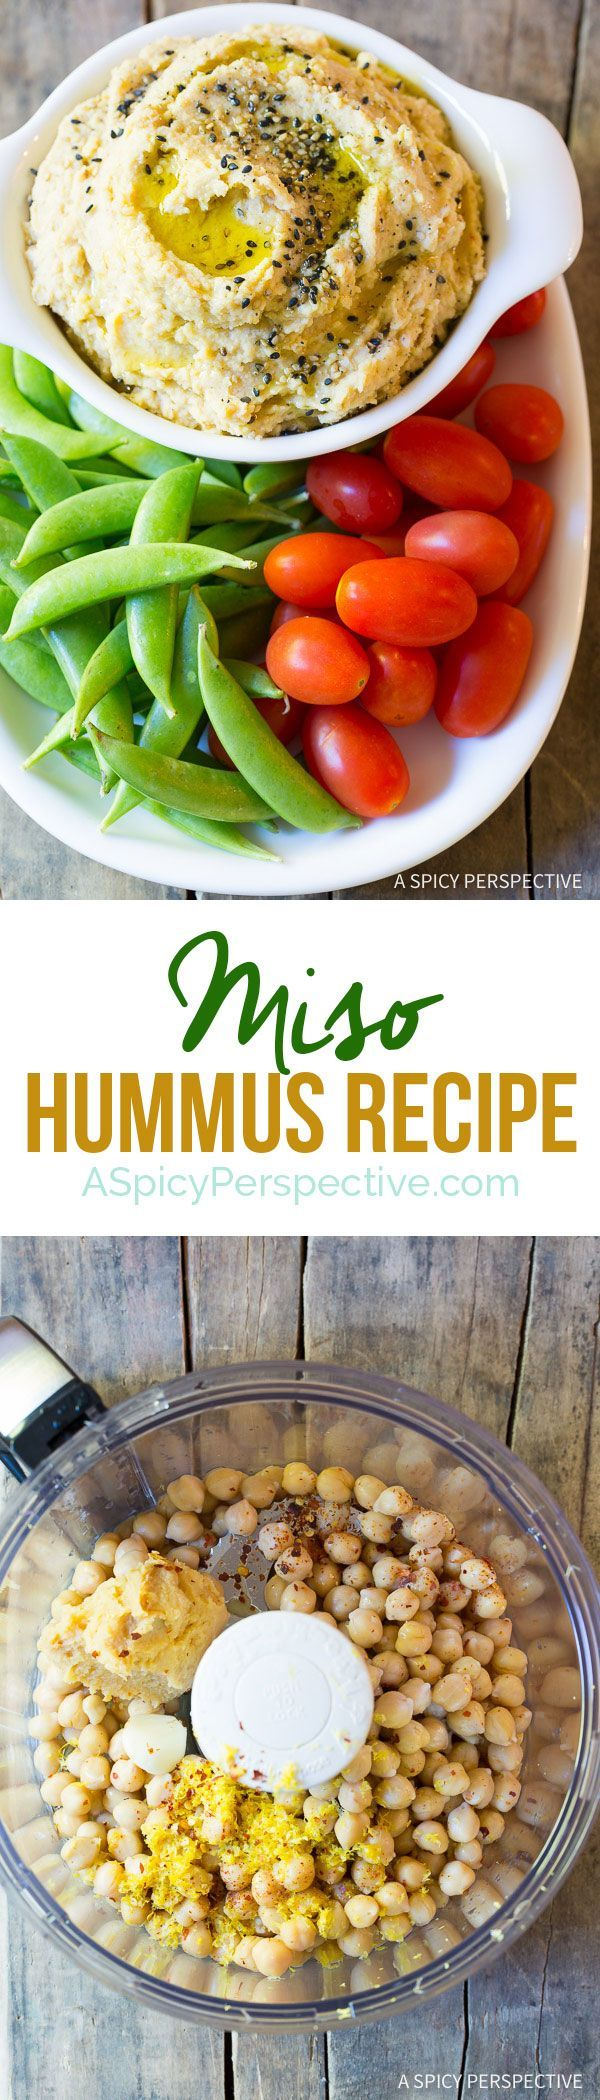 I love this Rich and Creamy Miso Hummus Recipe on ASpicyPerspective.com via @spicyperspectiv